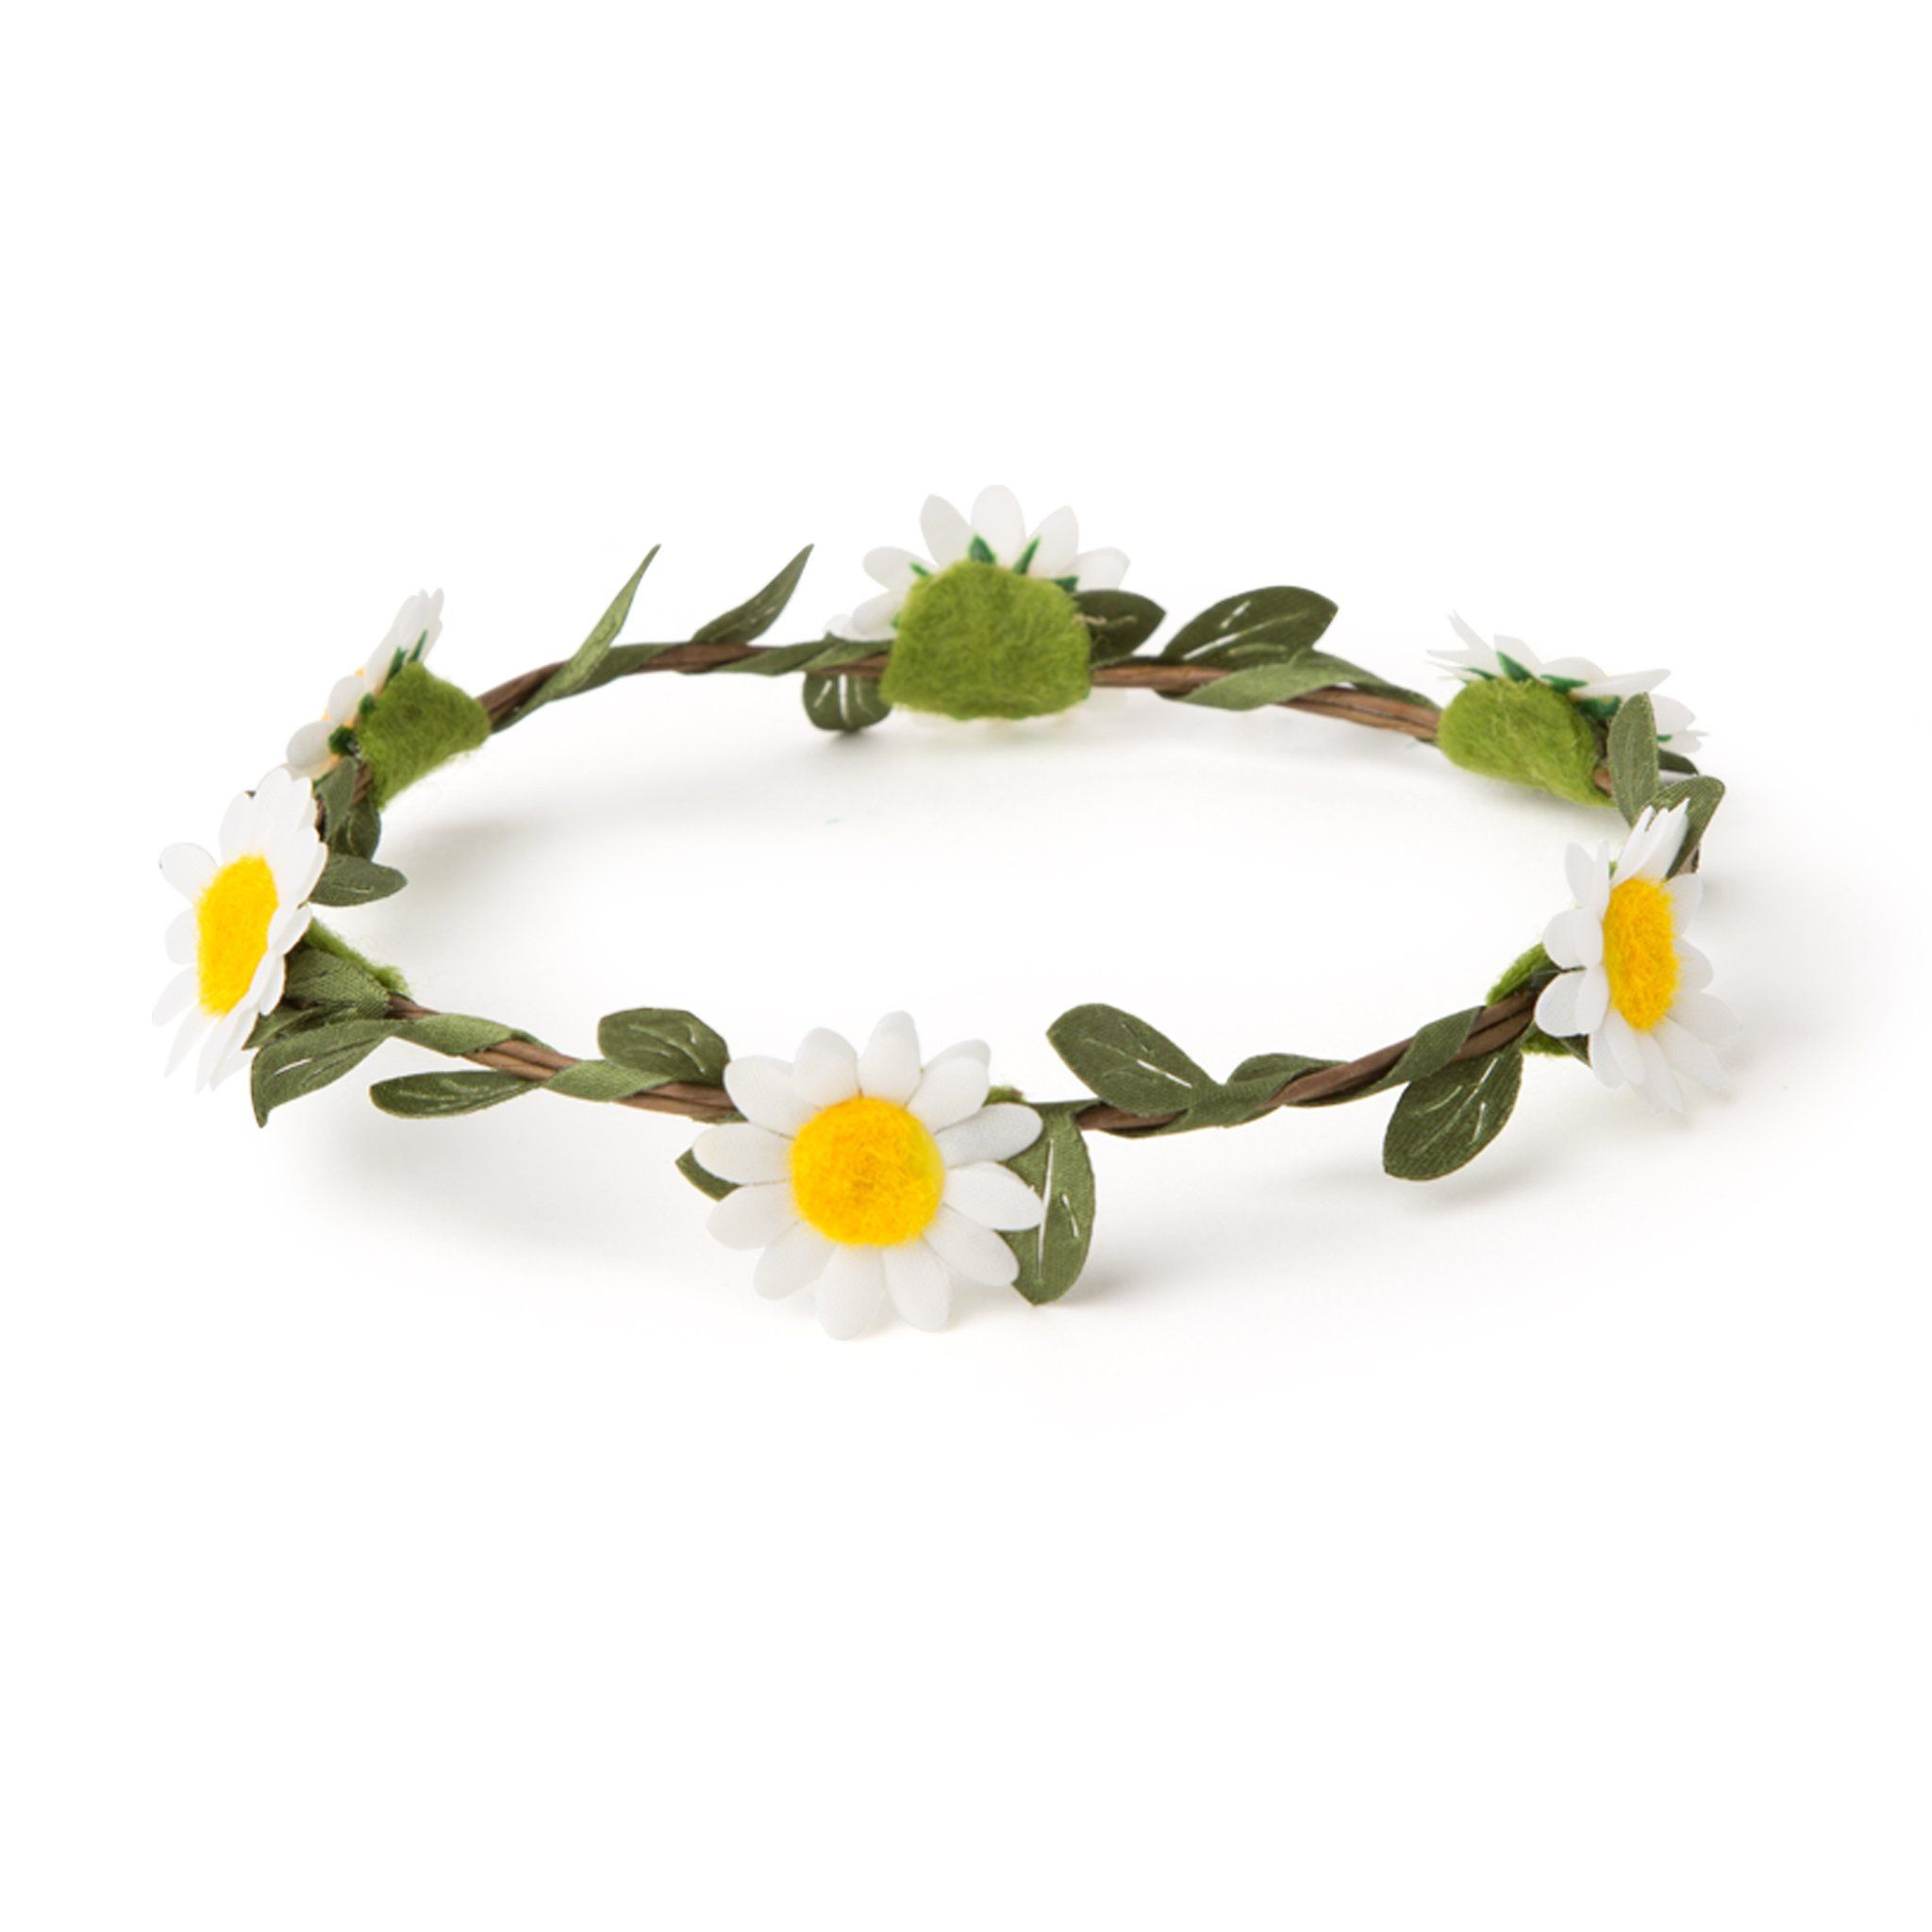 Daisy-chain floral wreath headband fits all 18 inch dolls.